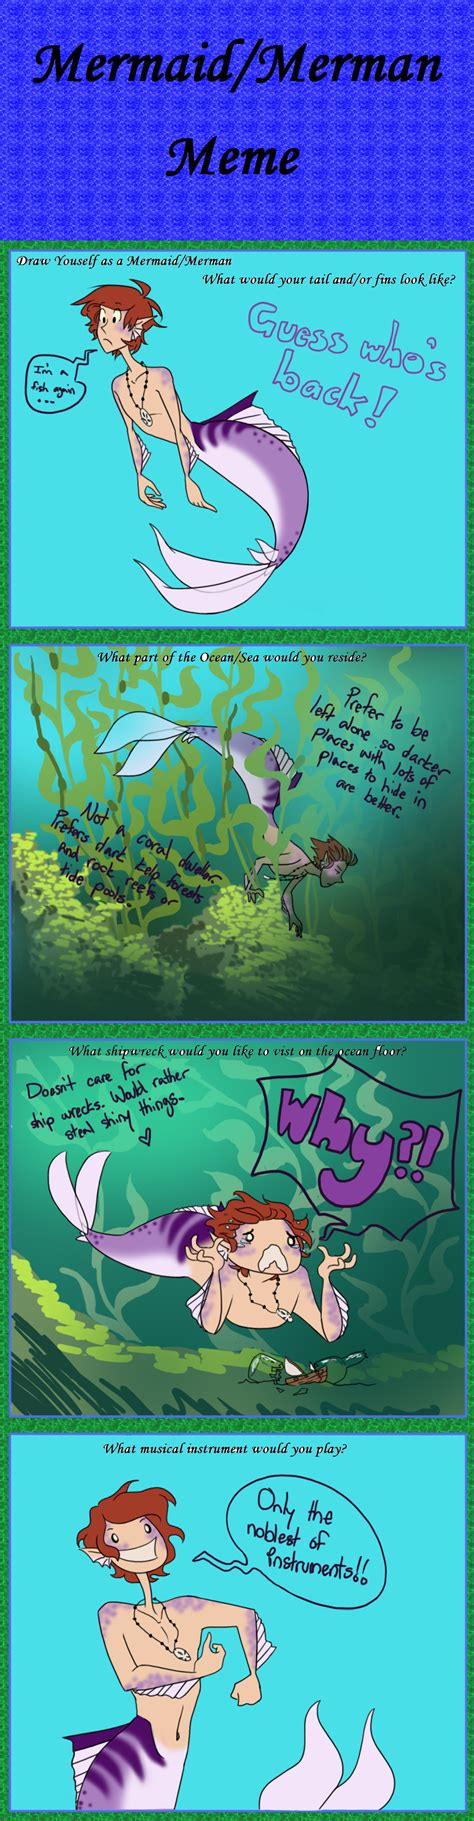 Mermaid Meme - mermaid merman meme by sollinfaolan on deviantart